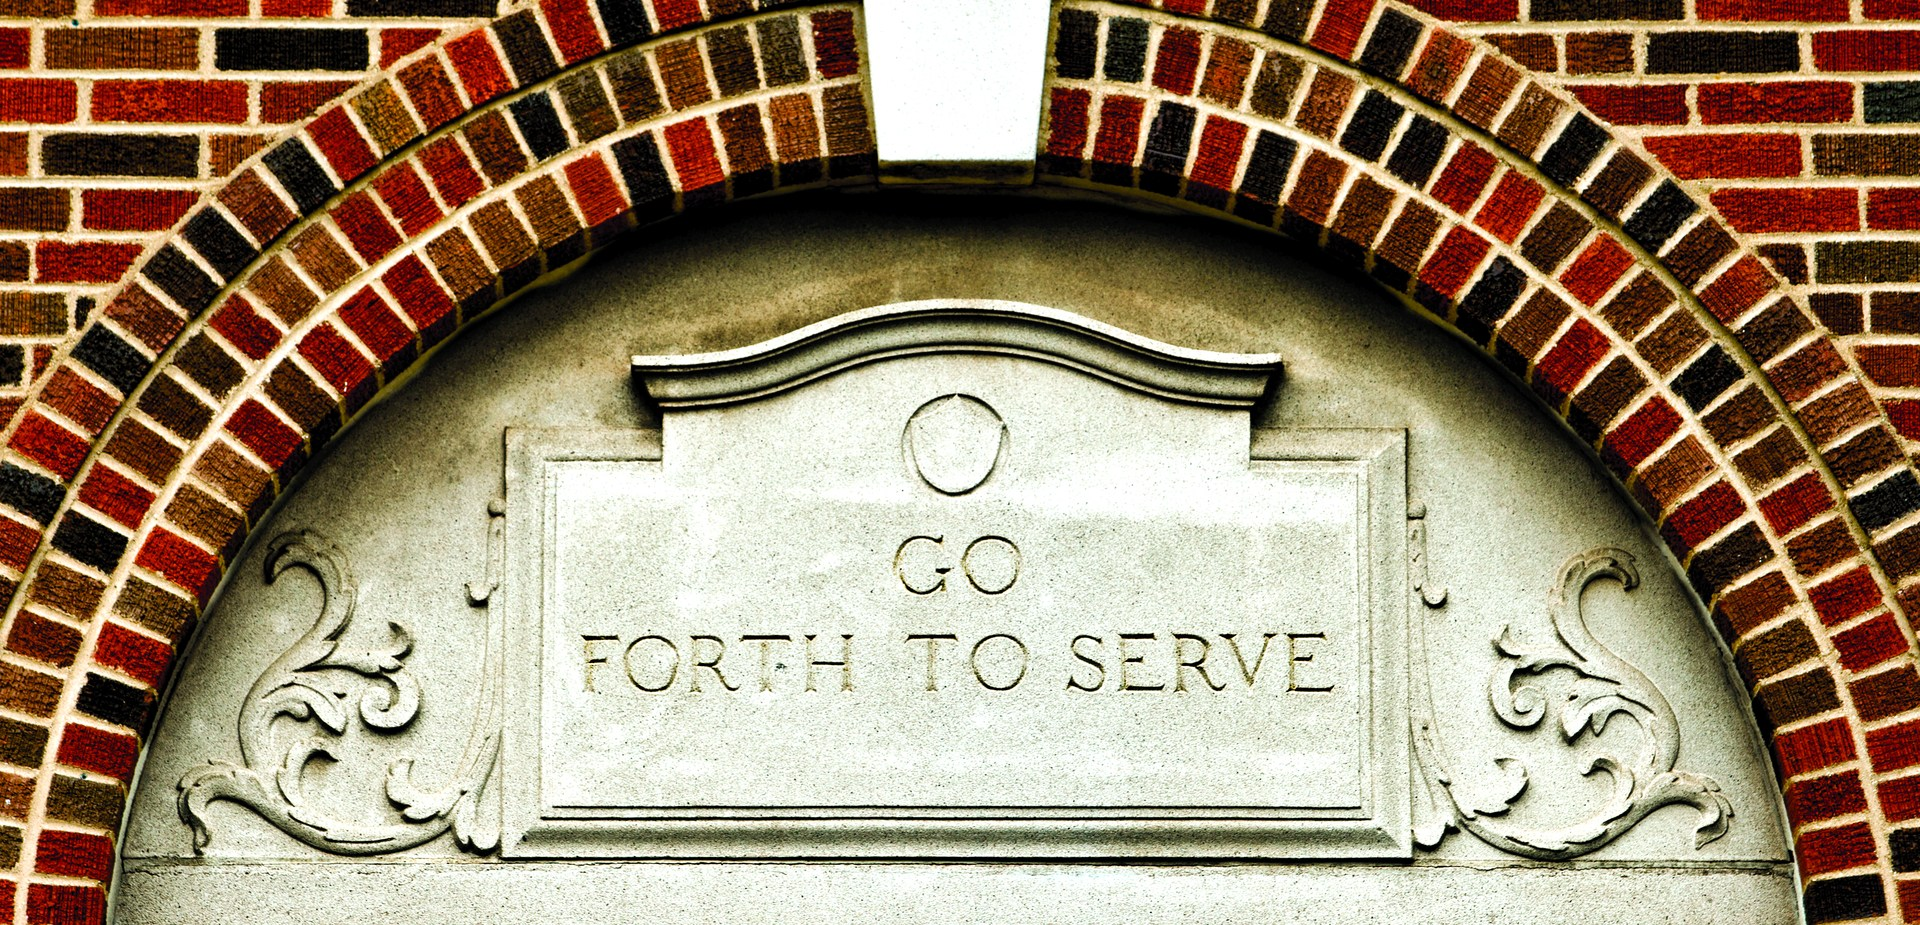 Enter to Learn Go Forth to Serve